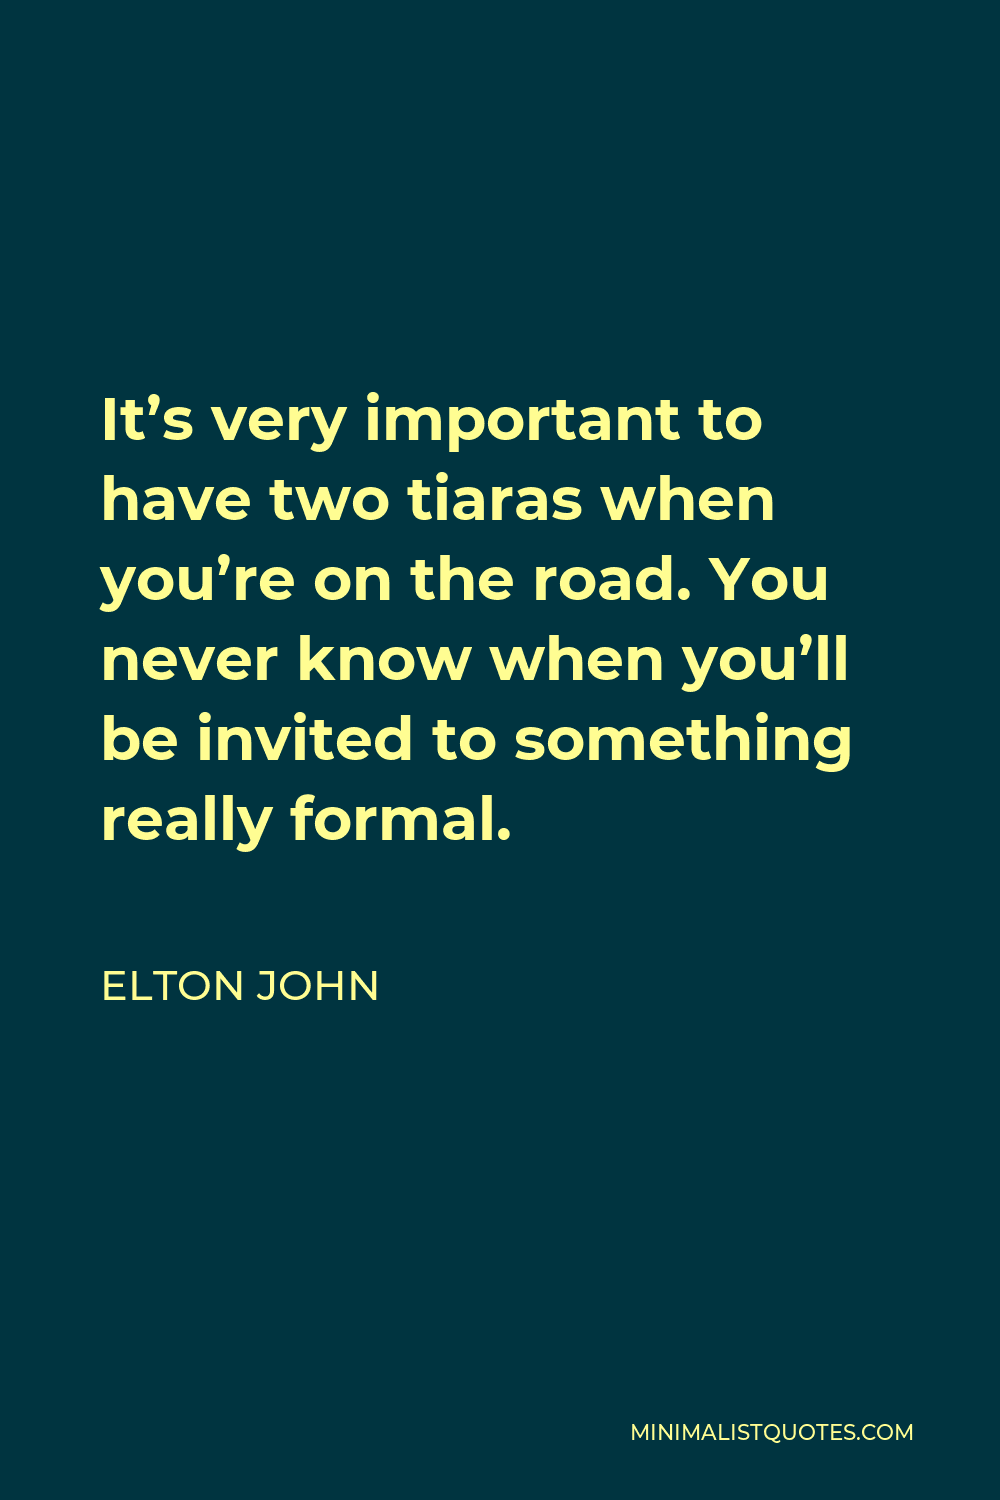 Elton John Quote - It's very important to have two tiaras when you're on the road. You never know when you'll be invited to something really formal.